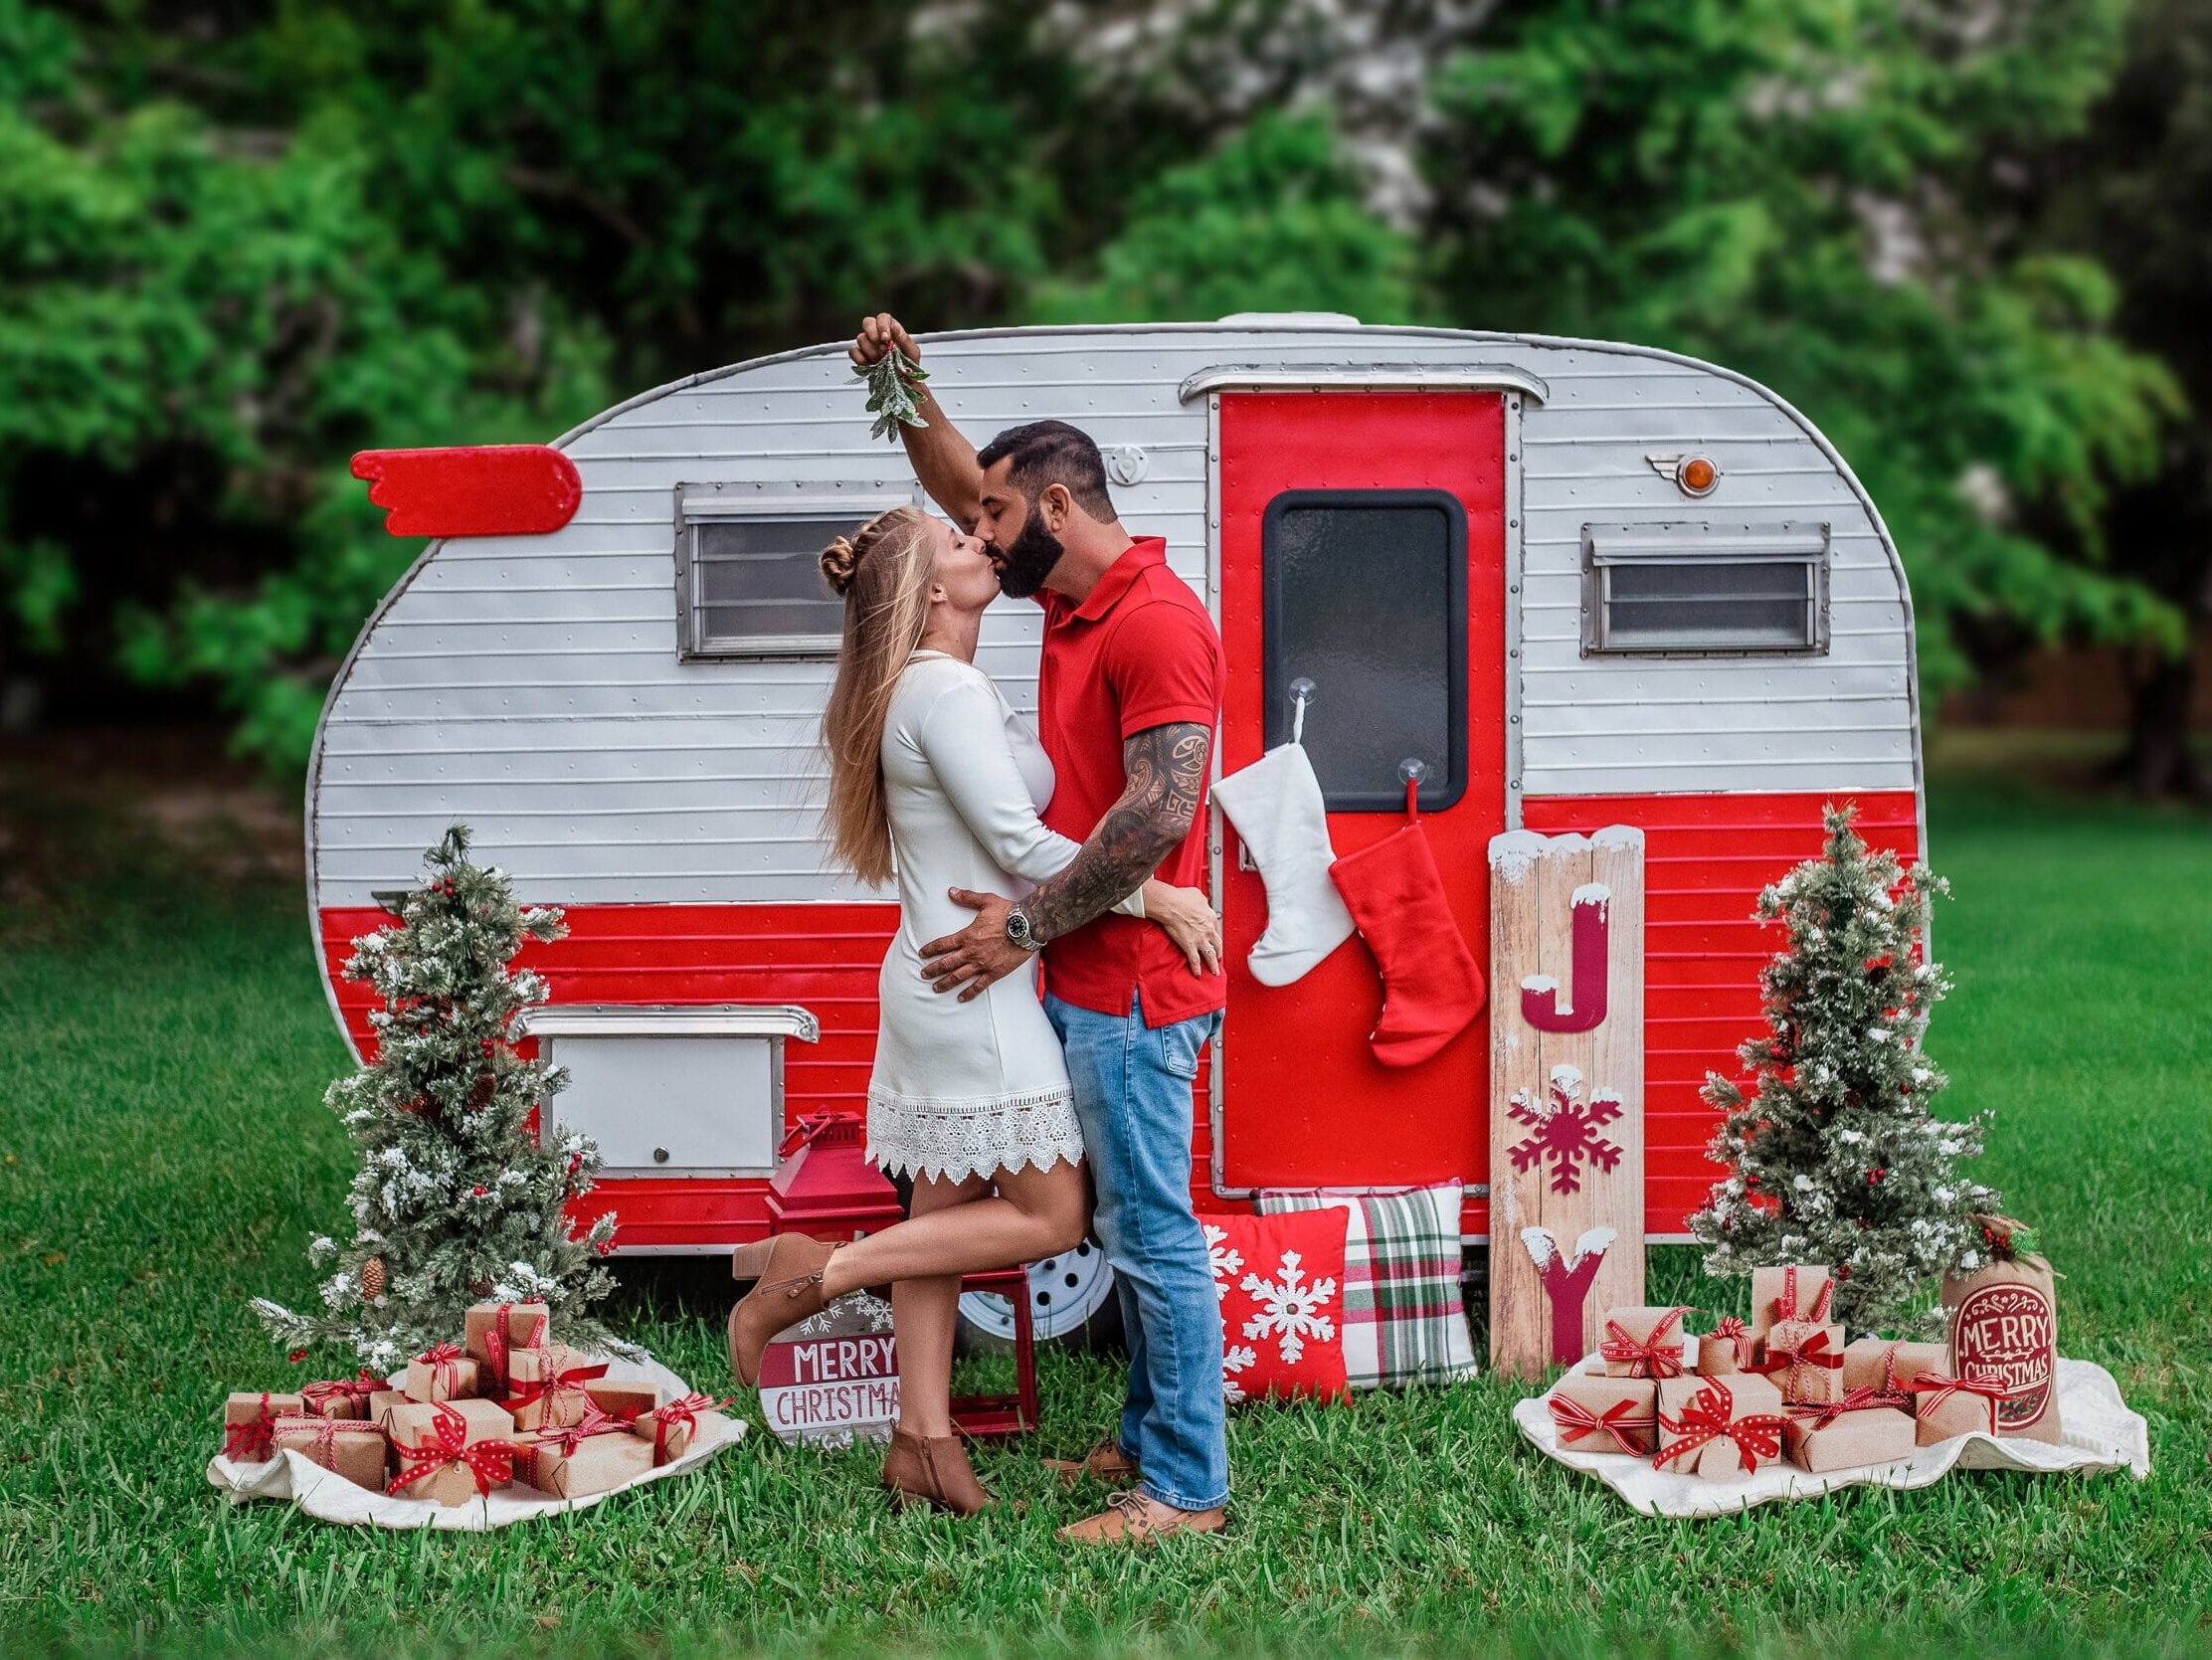 Family Christmas card ideas that show a mini camper and mistletoe | The Dating Divas